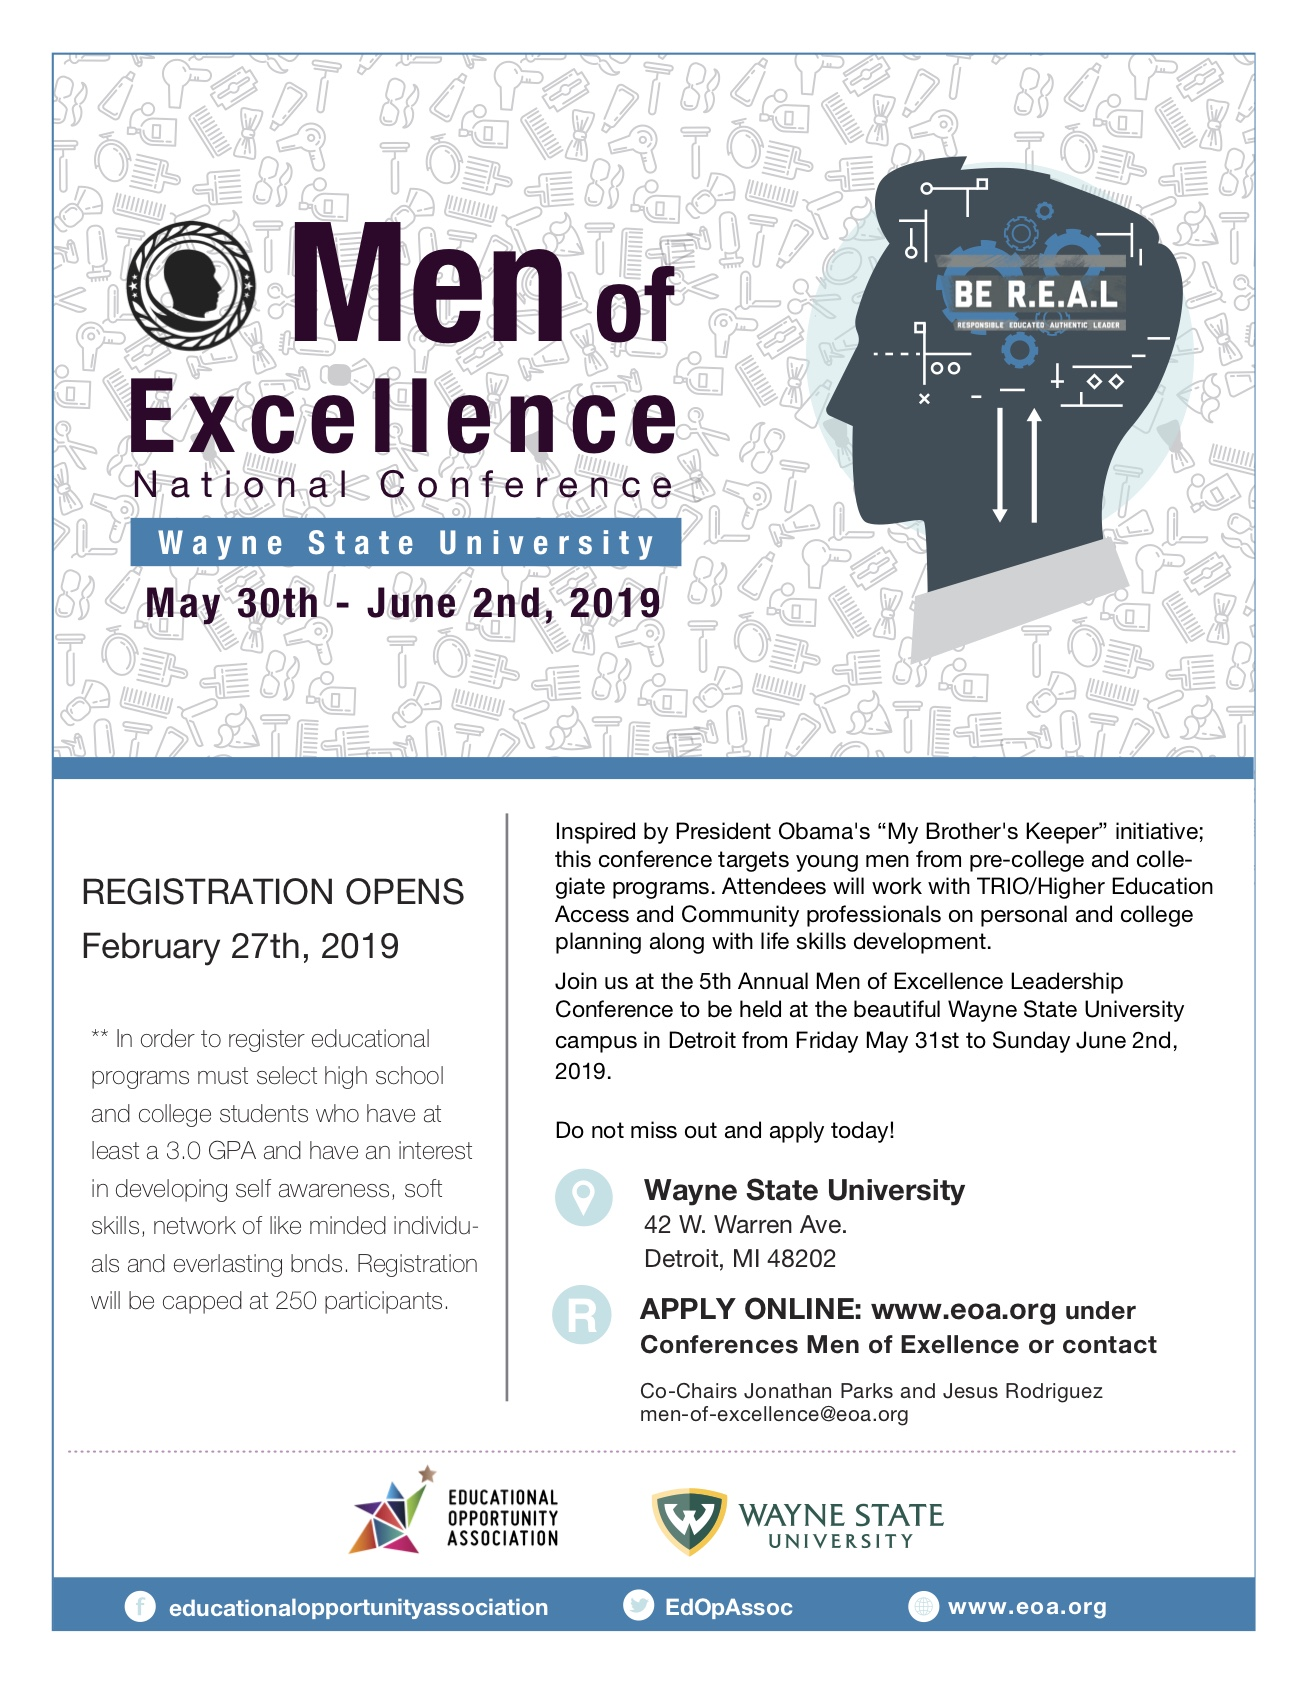 Fifth annual EOA Men of Excellence National Conference